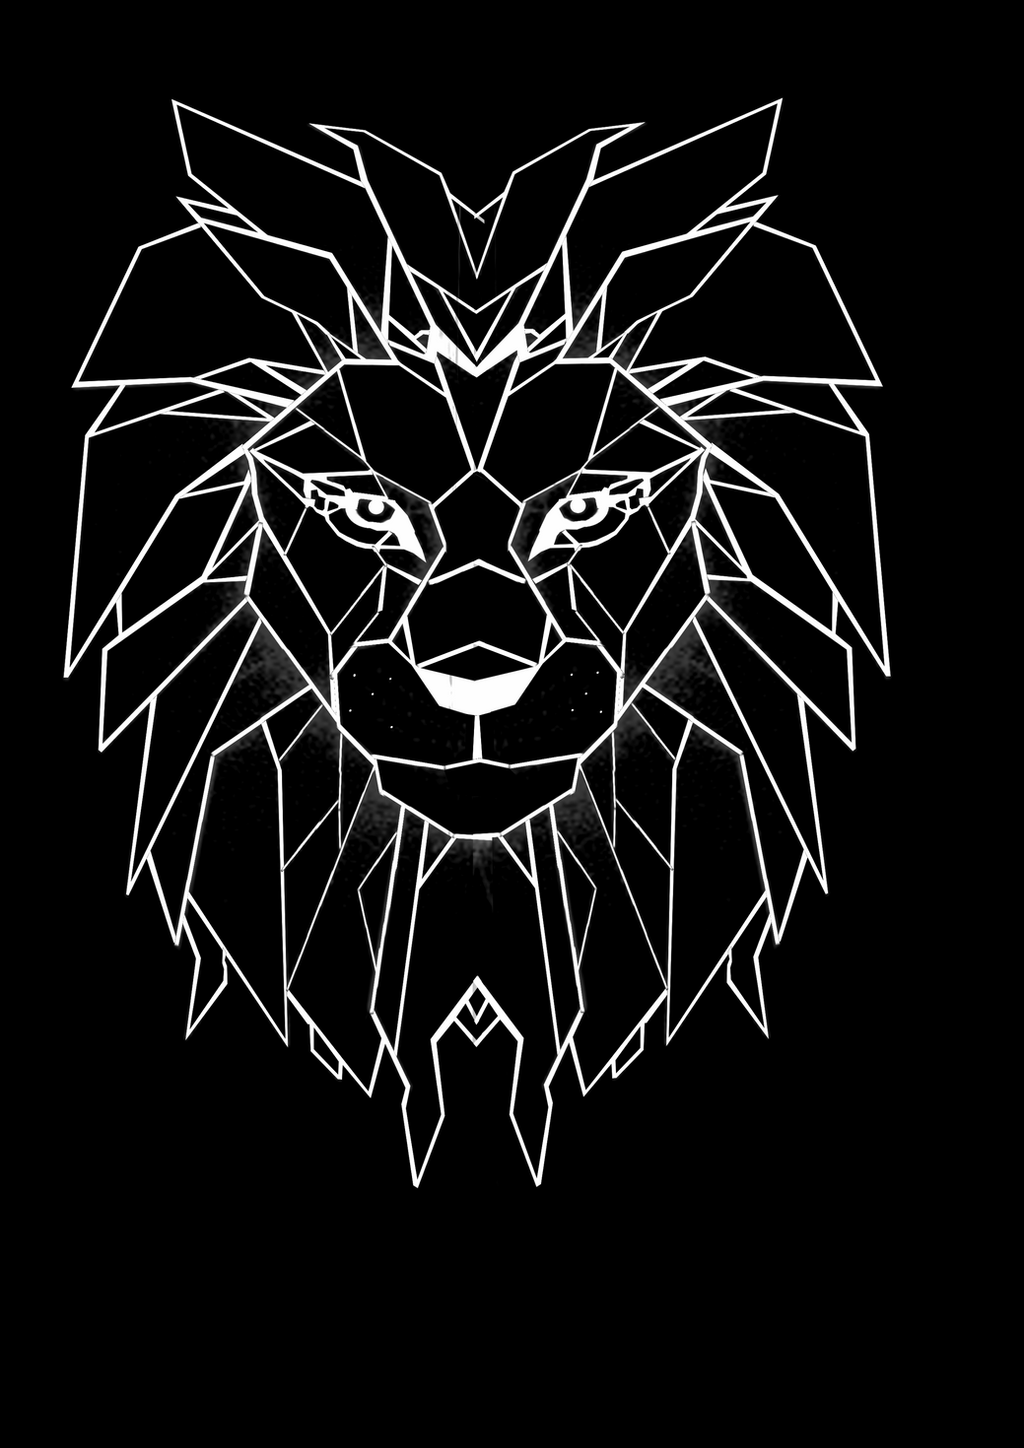 lion head graphic design by chaeyo on deviantart